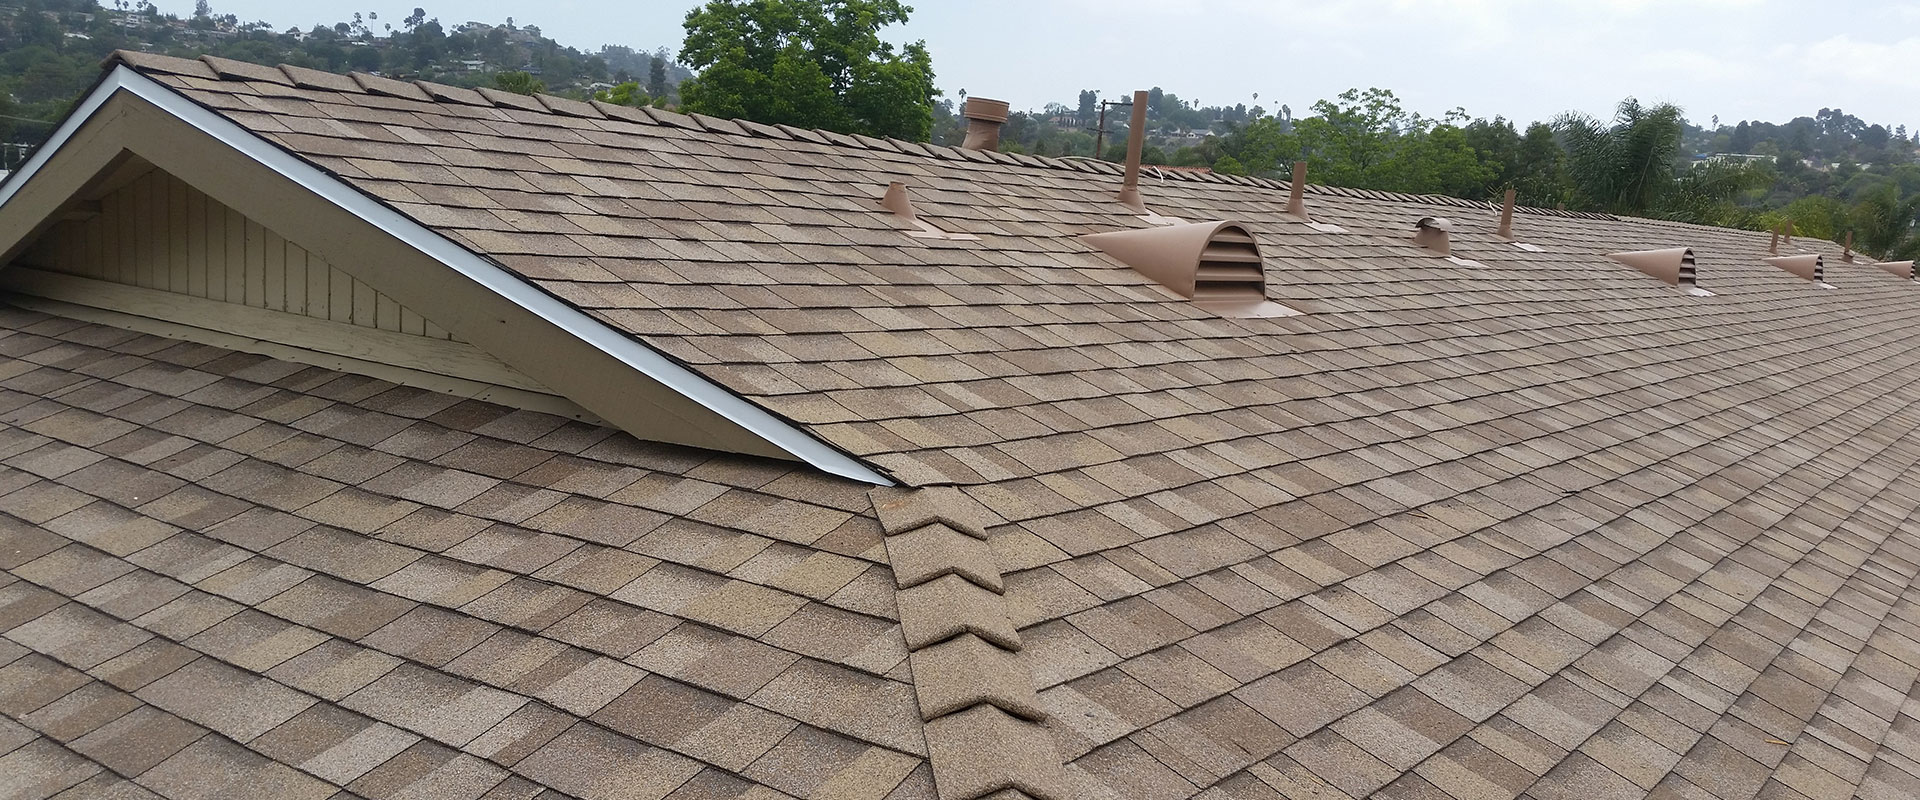 San Diego Roofing Reed Roofing